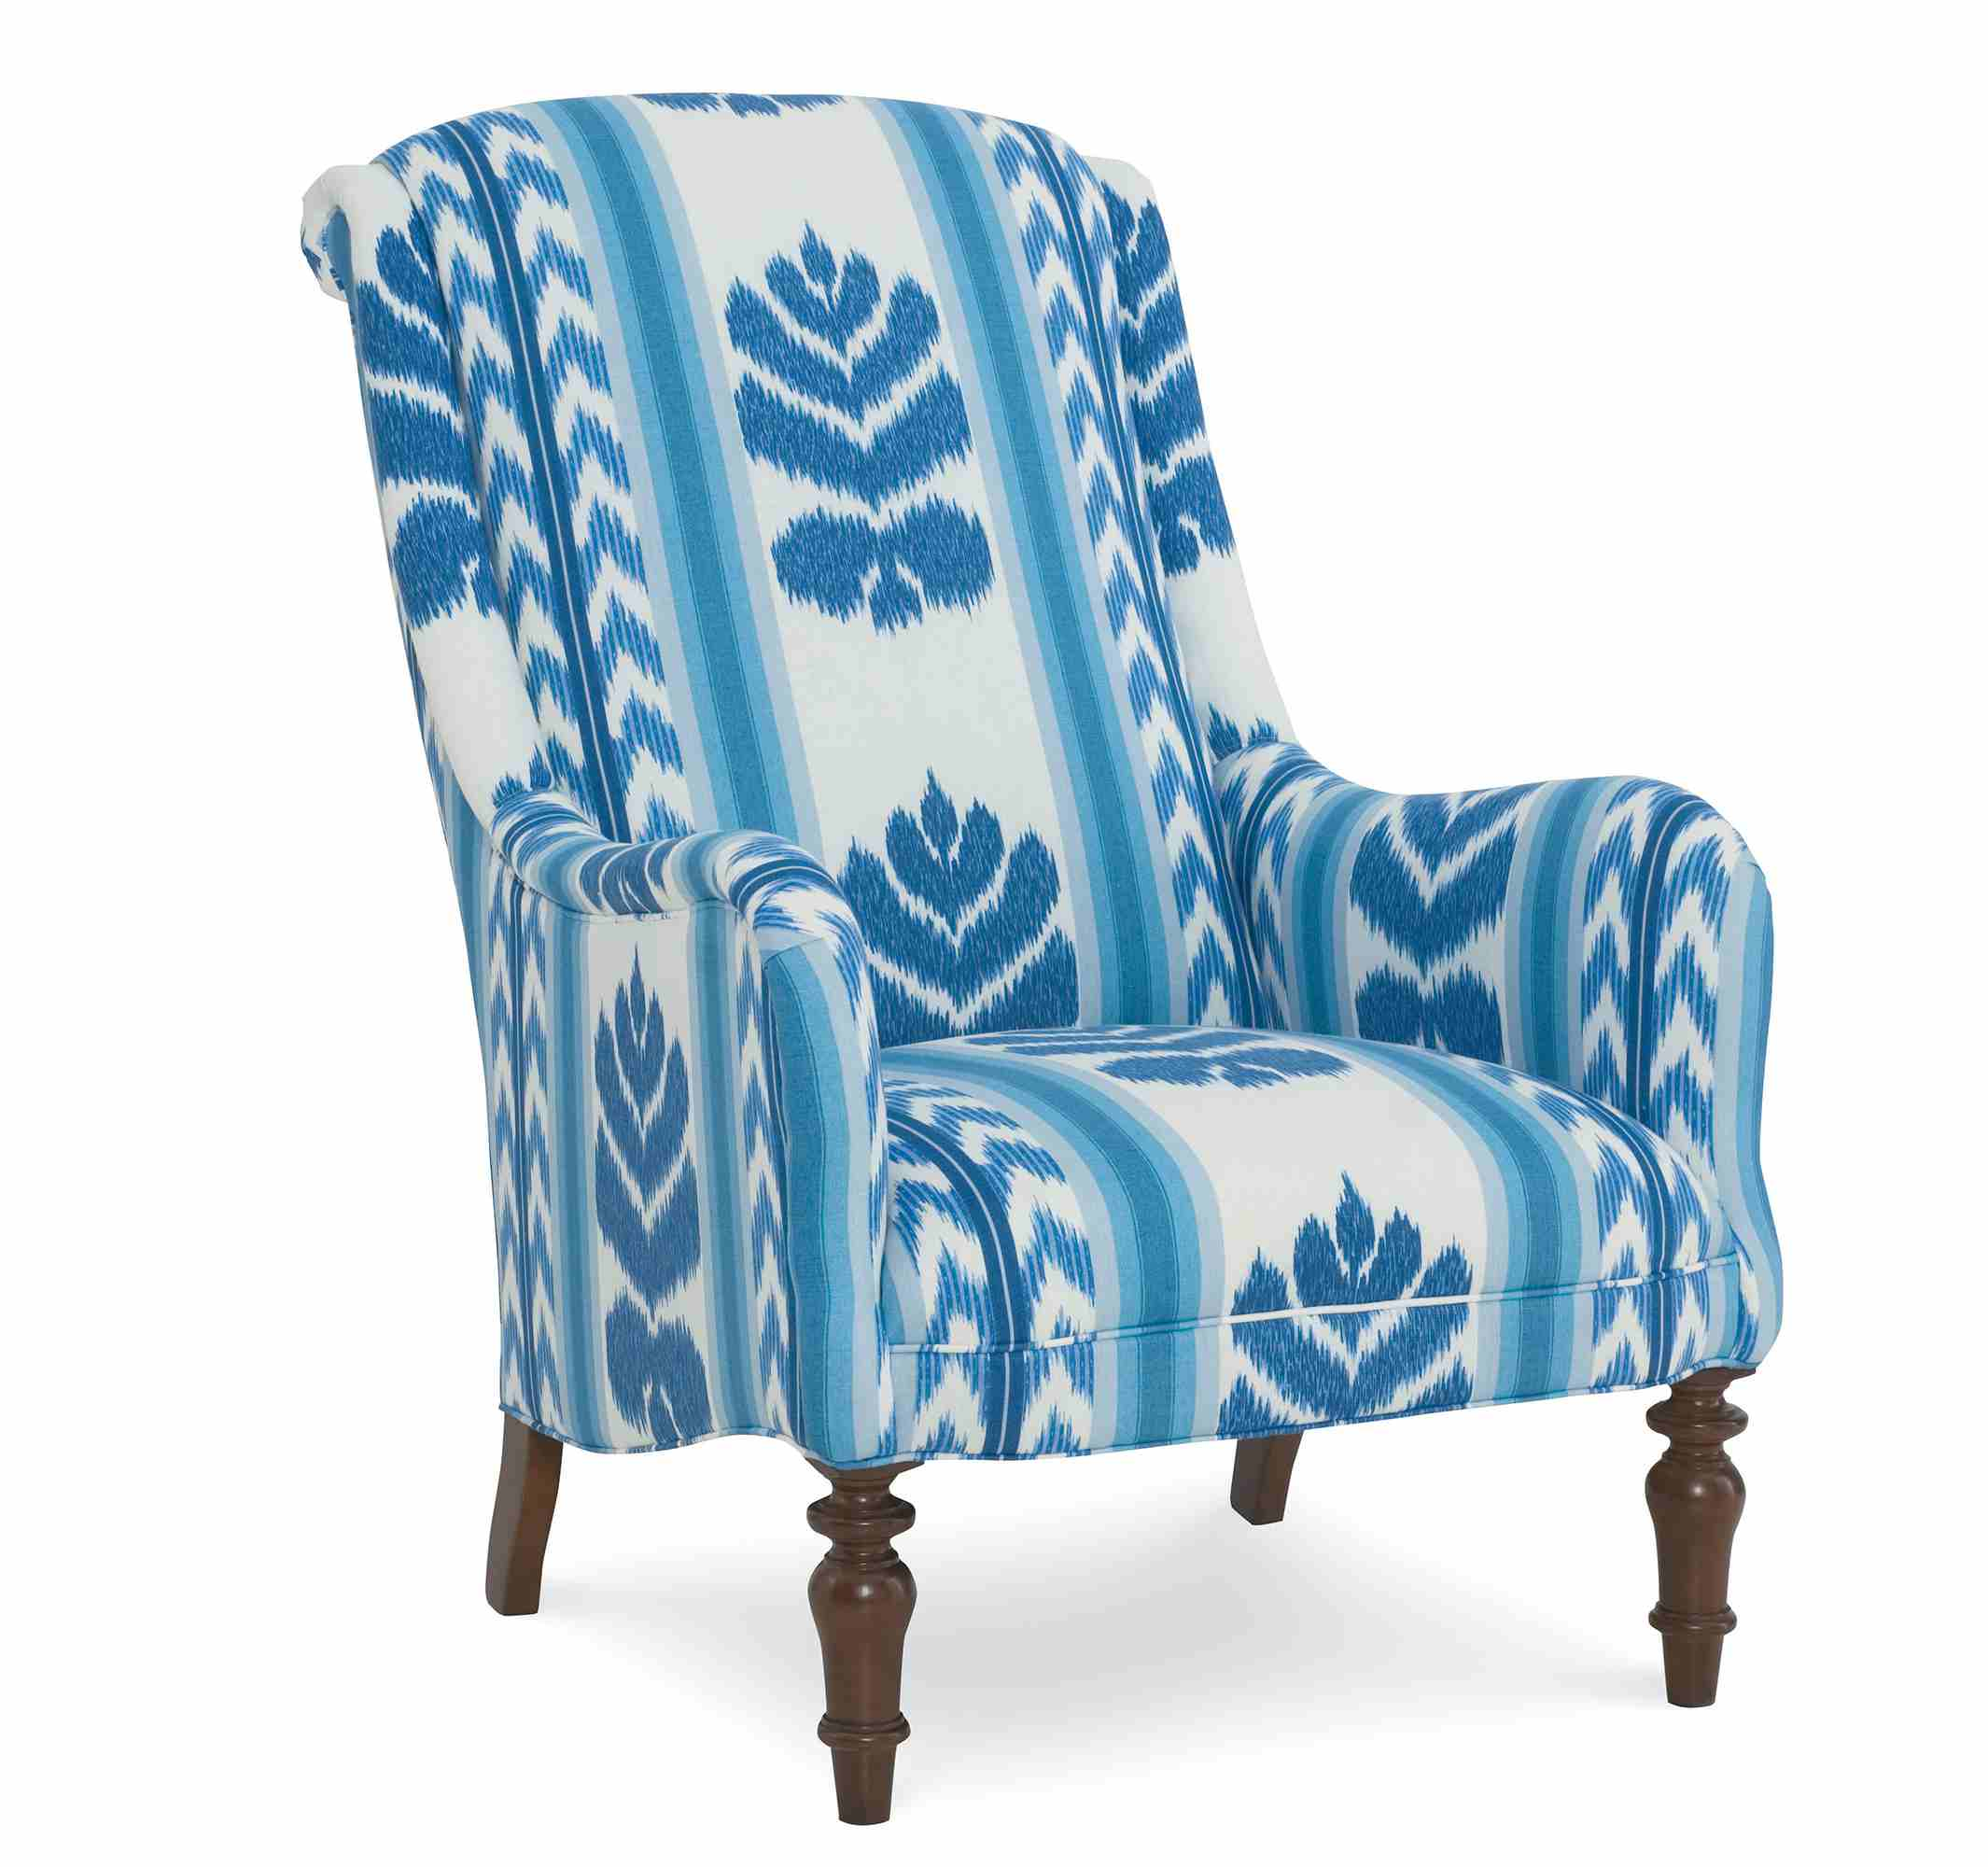 A blue and white Easton chair.